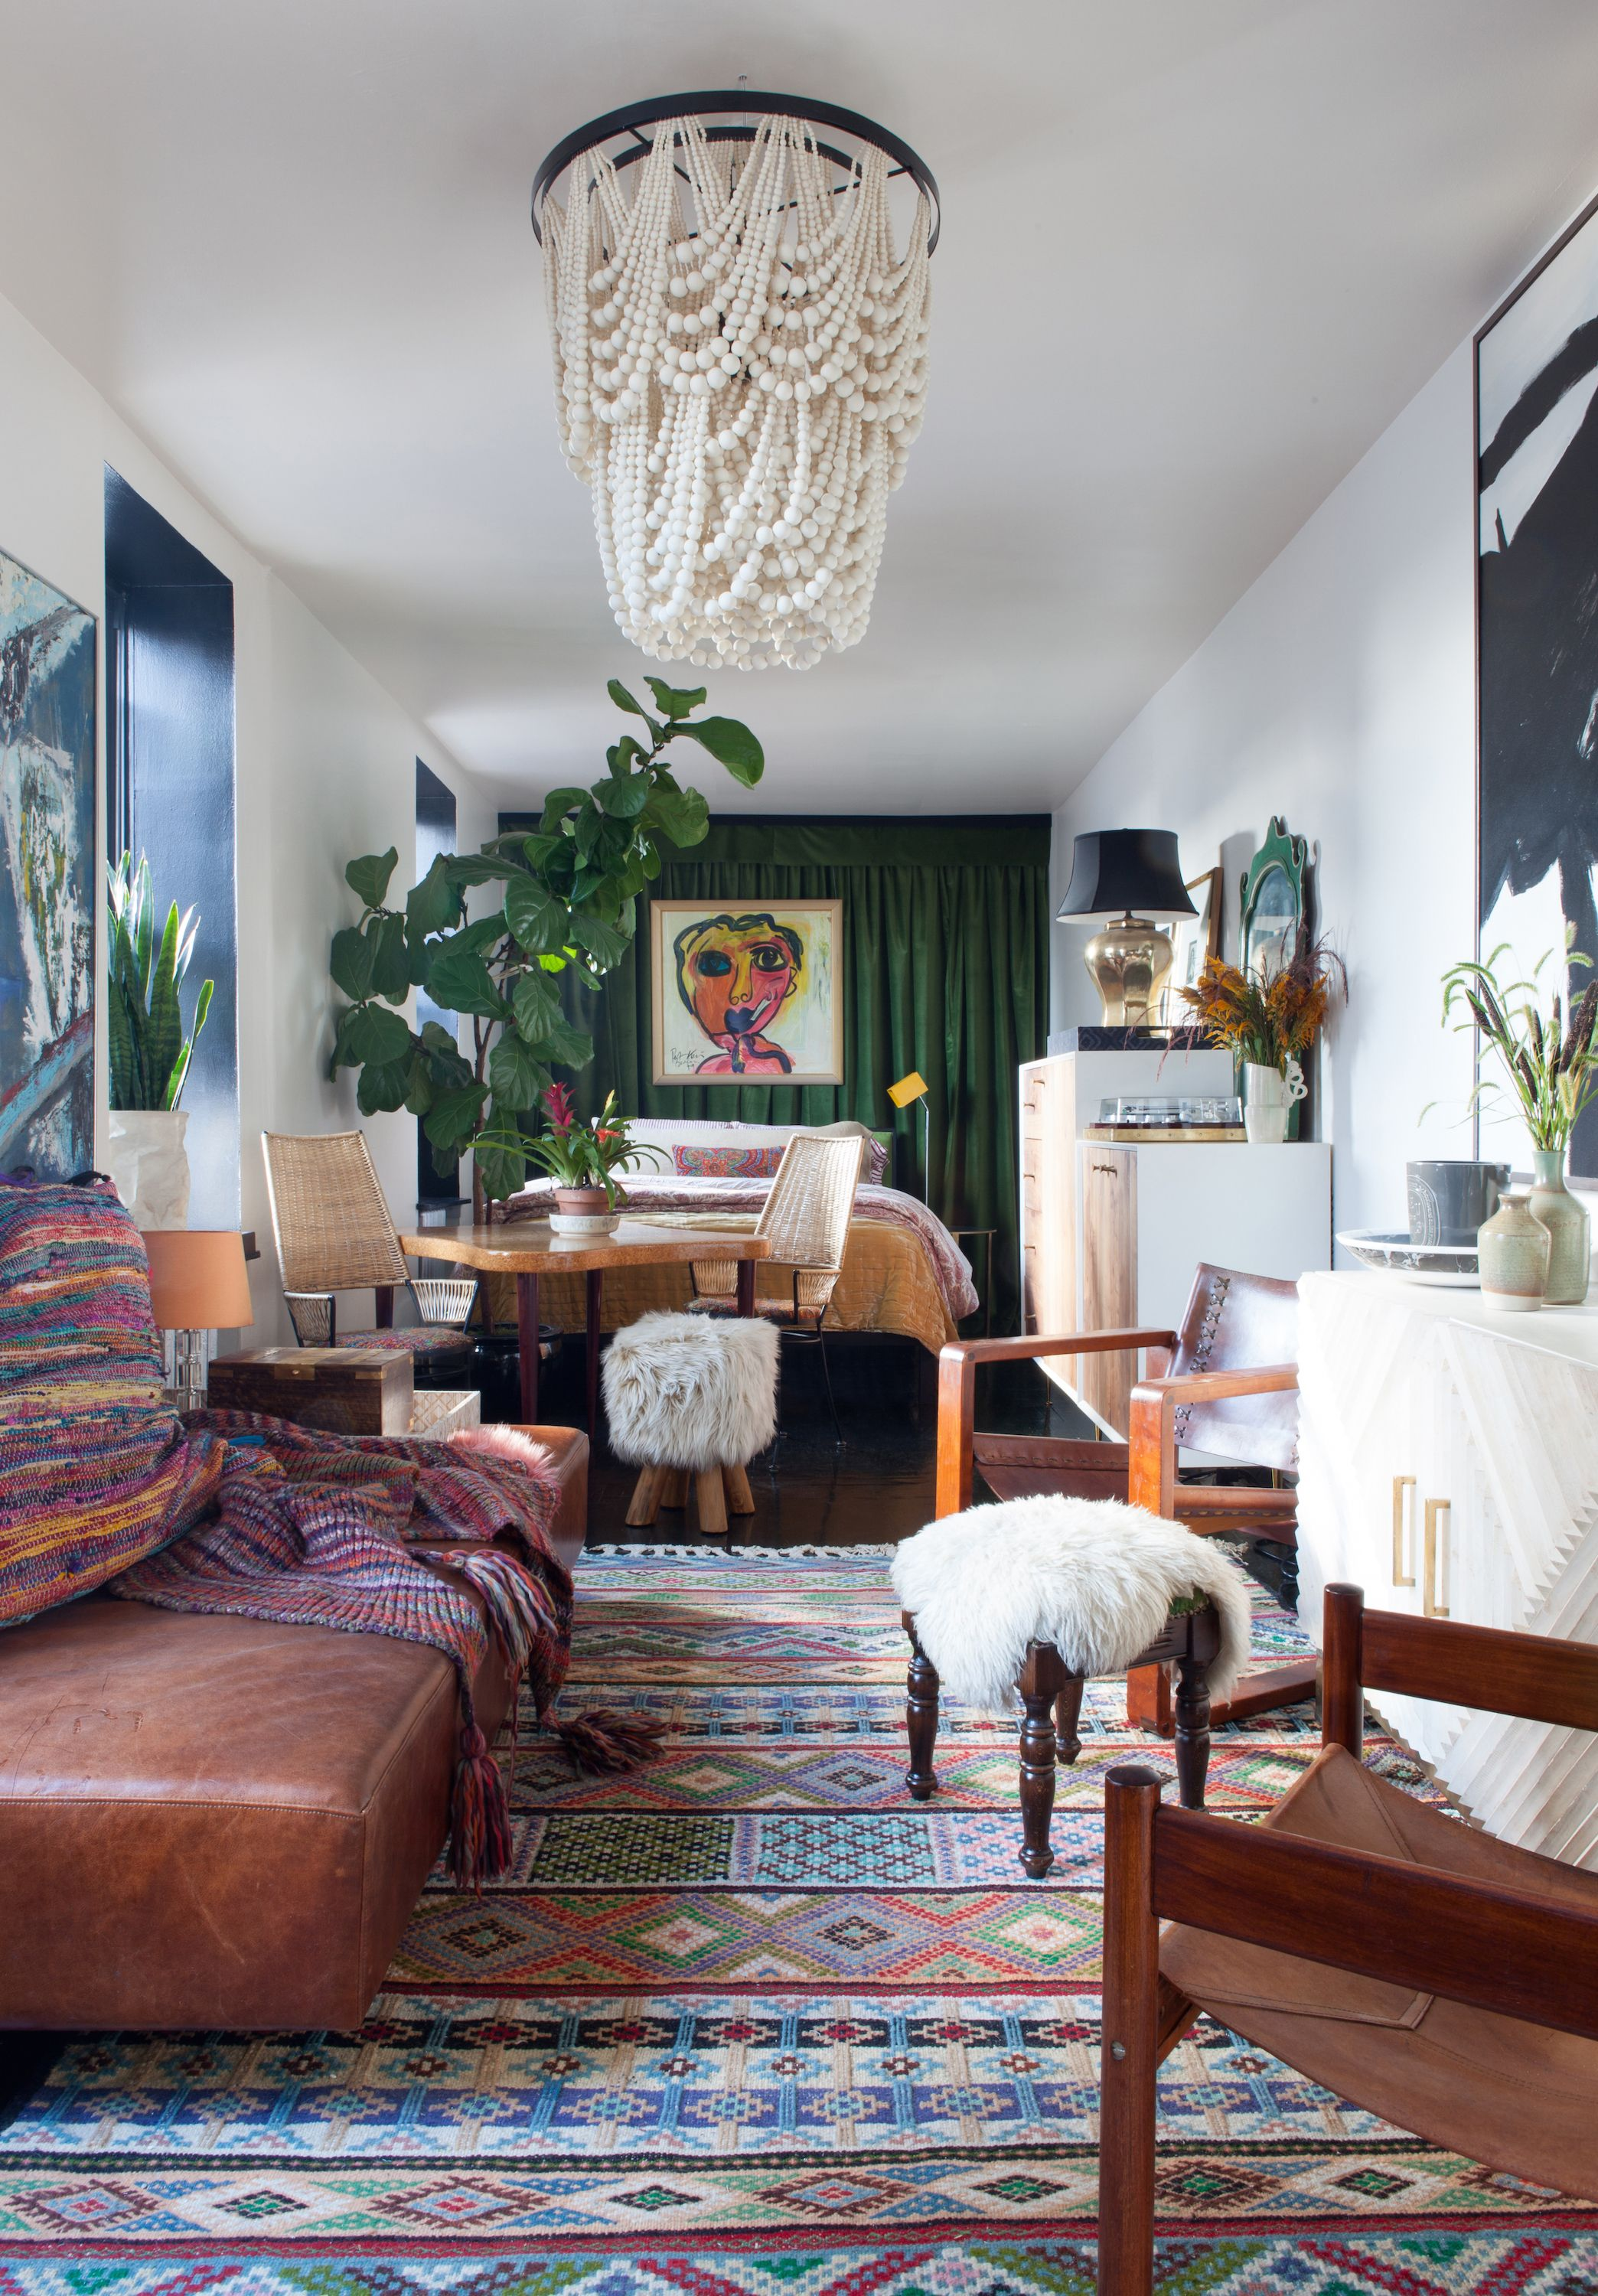 10 Best Ways To Display Souvenirs   Worldly Eclectic Style In A New York  City Apartment